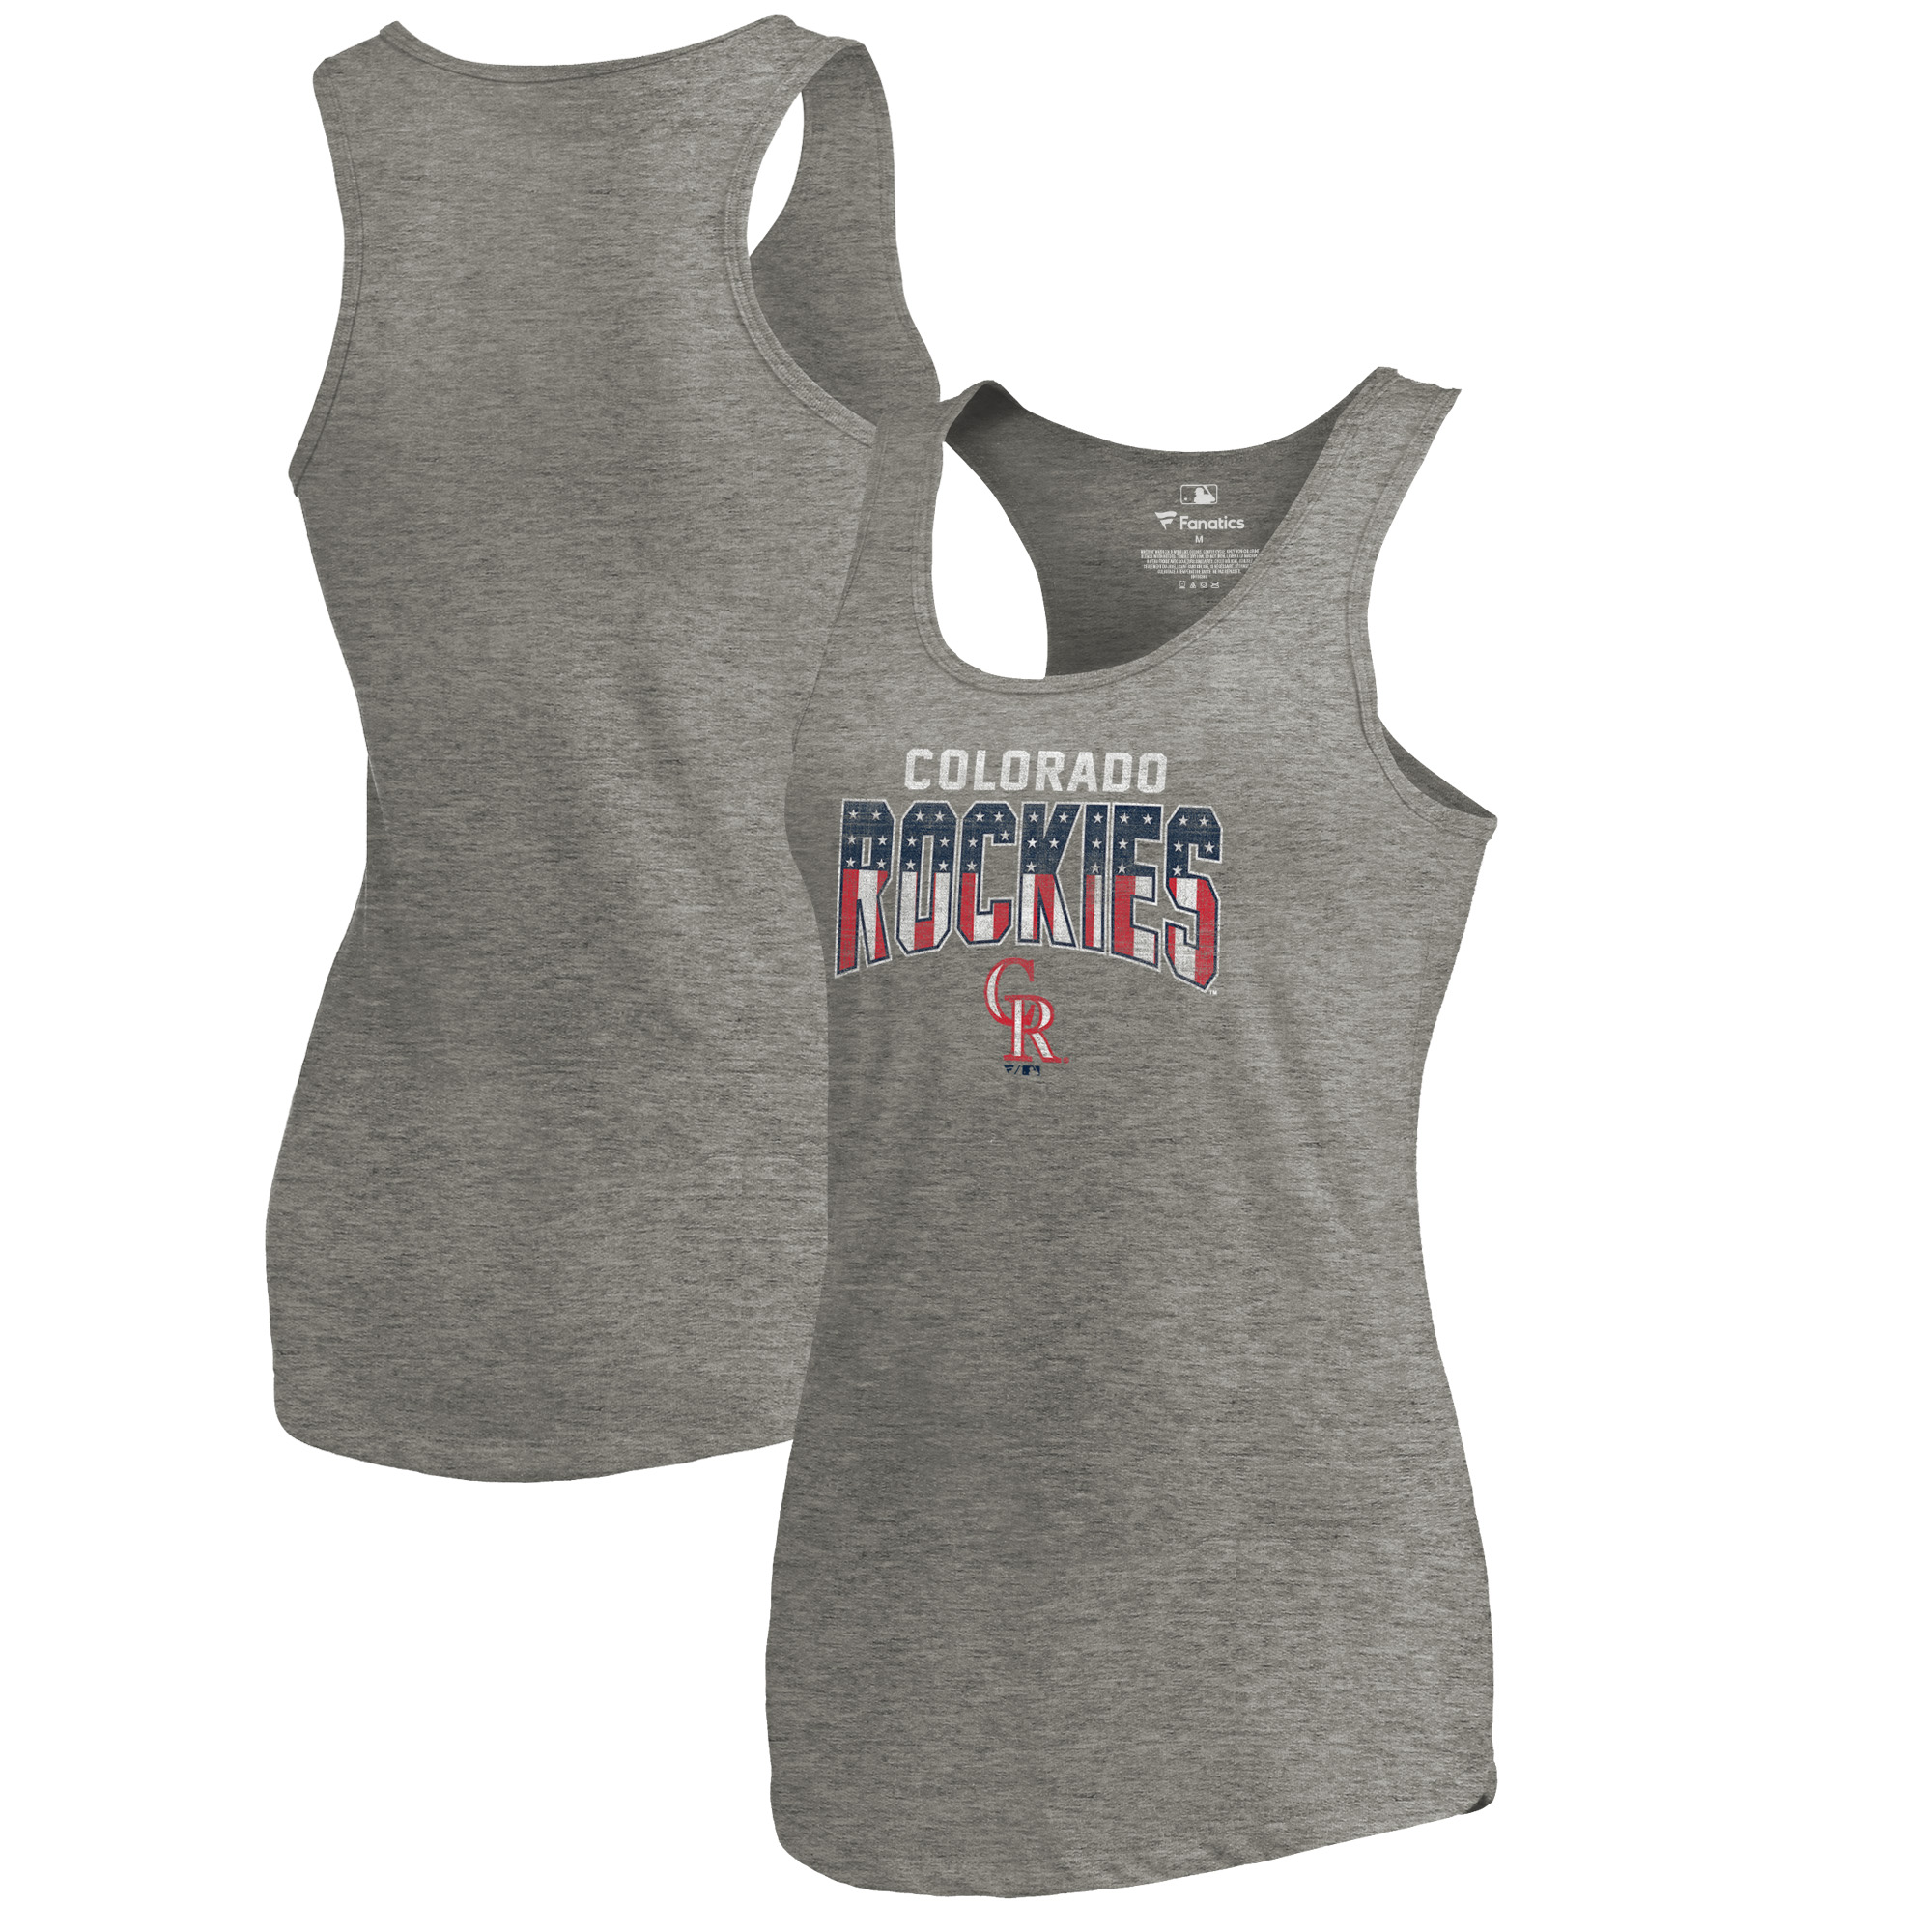 Colorado Rockies Fanatics Branded Women's 2018 Memorial Day Freedom Tri-Blend Tank Top - Heathered Gray